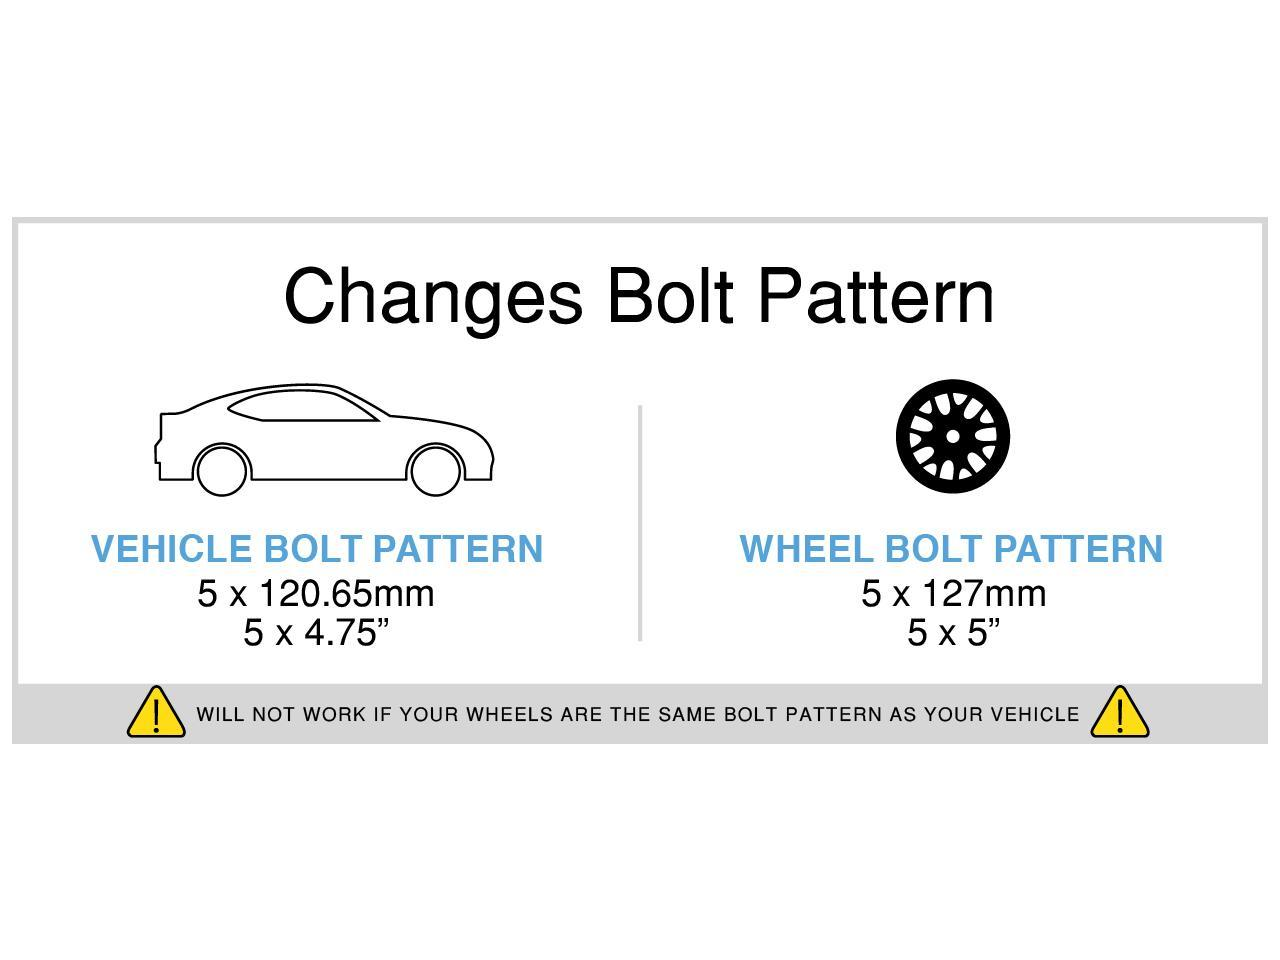 1984-2013 Corvette Changes Bolt Pattern StanceMagic 2pcs 1 inch Wheel Adapters 5x4.75 to 5x4.5 with 12x1.5 studs for Chevy 1982-2003 Camaro S10 GMC Jimmy S15 Pontiac Firebird GTO Trans Am